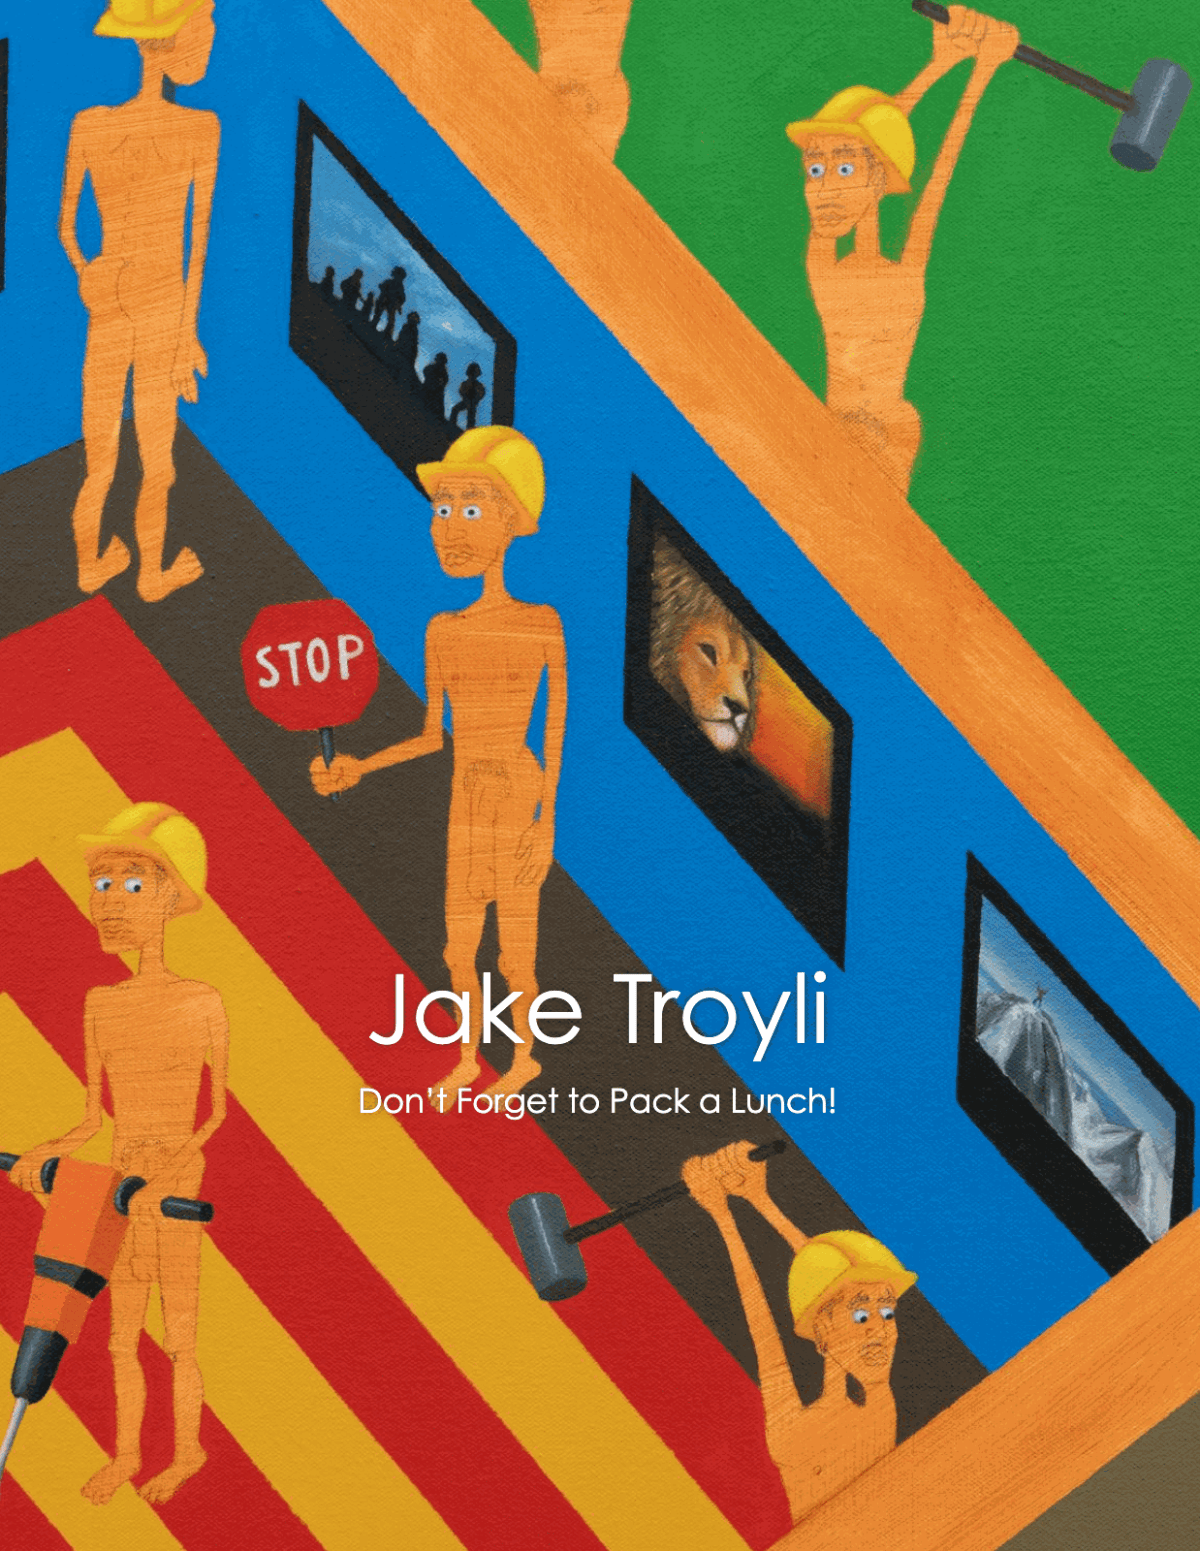 Jake Troyli: Don't Forget to Pack a Lunch!